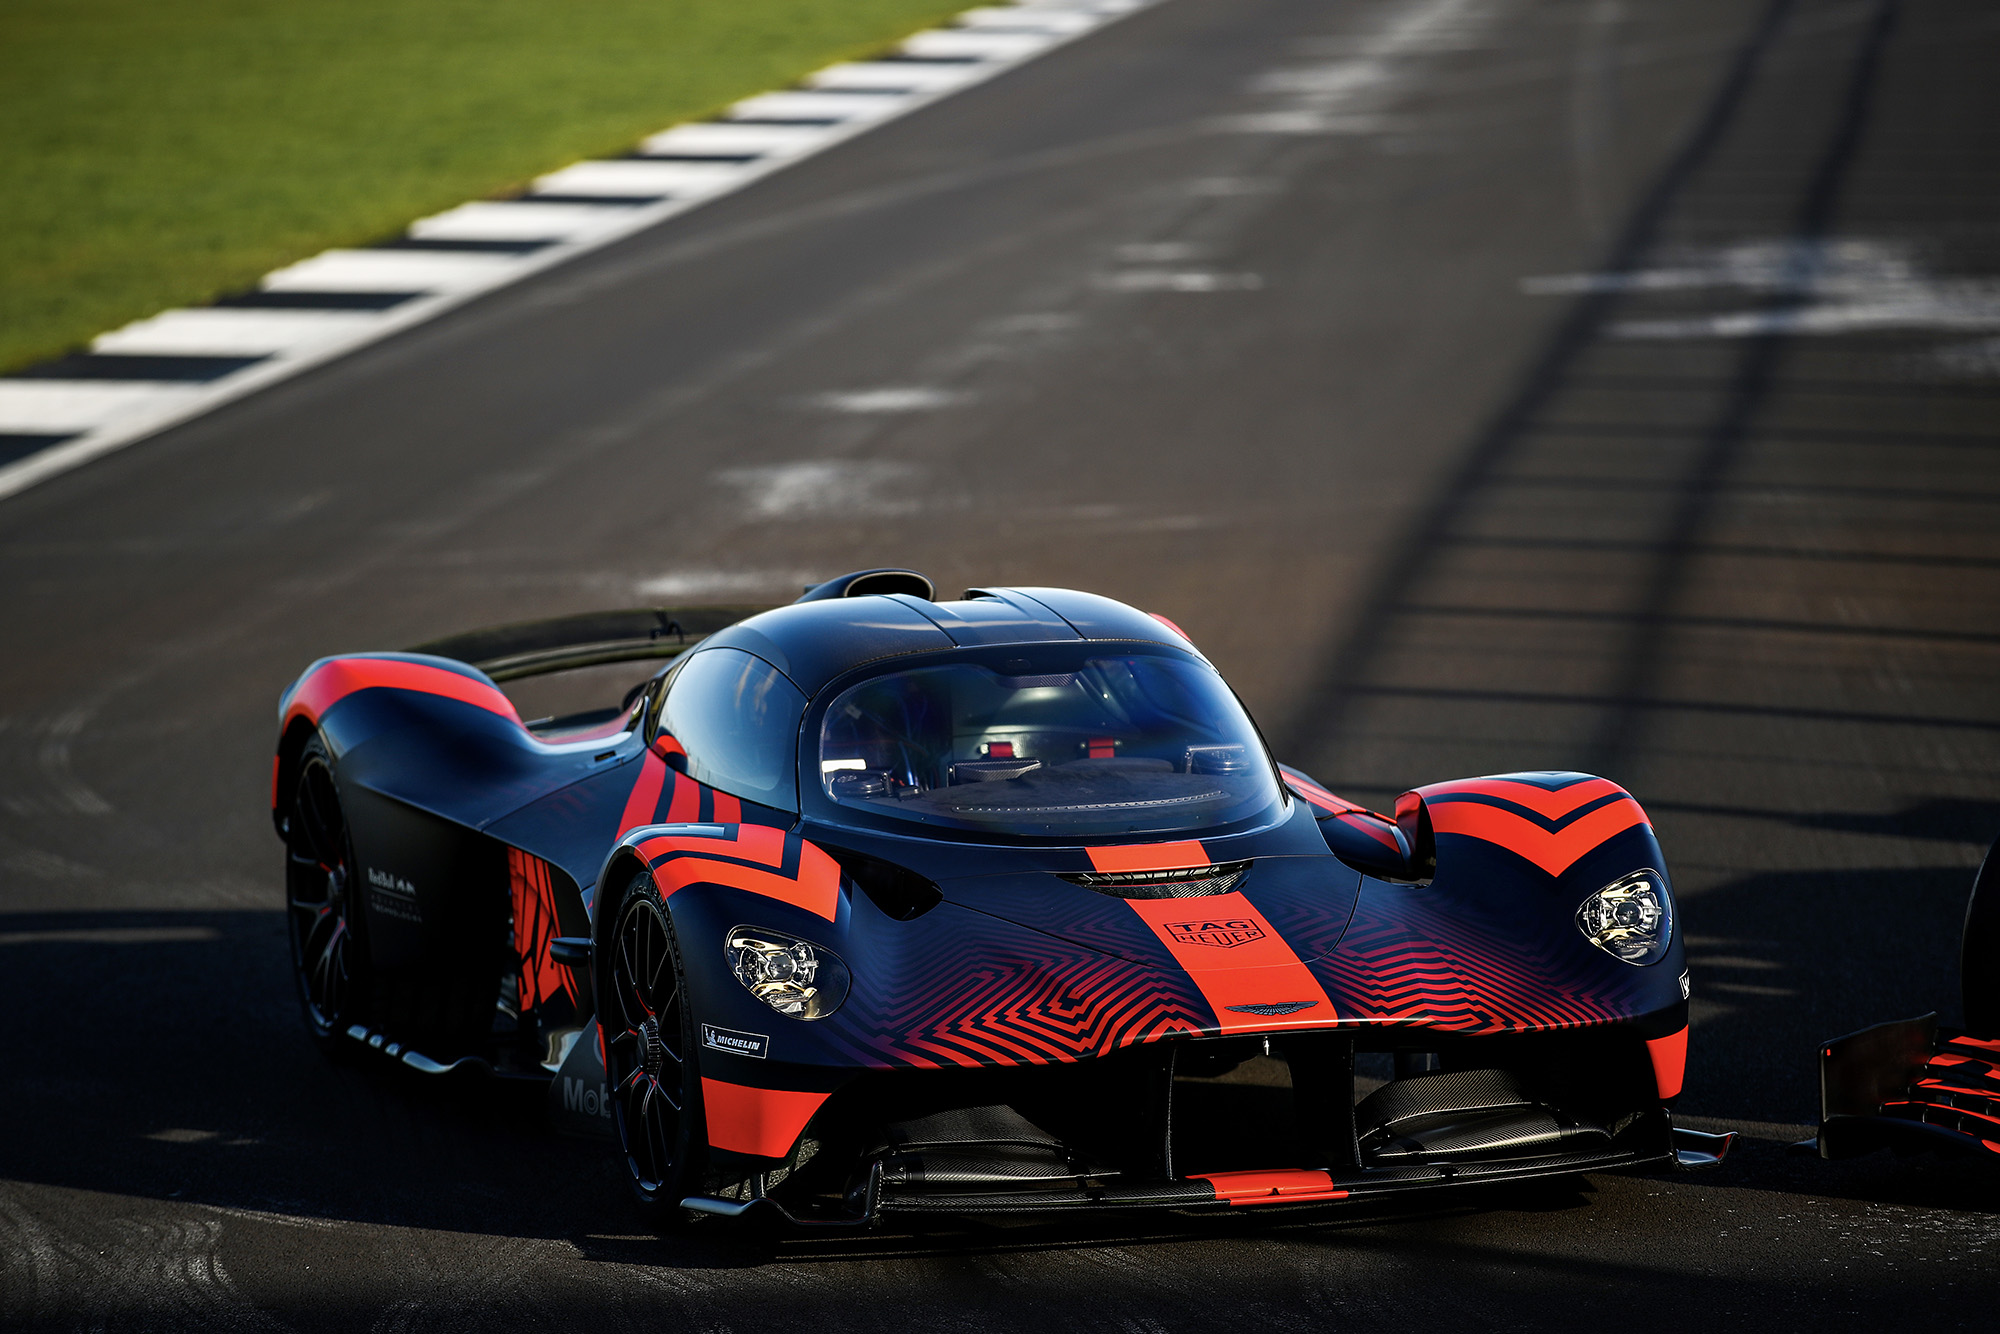 Aston Martin Valkyrie Le Mans hypercar put on hold